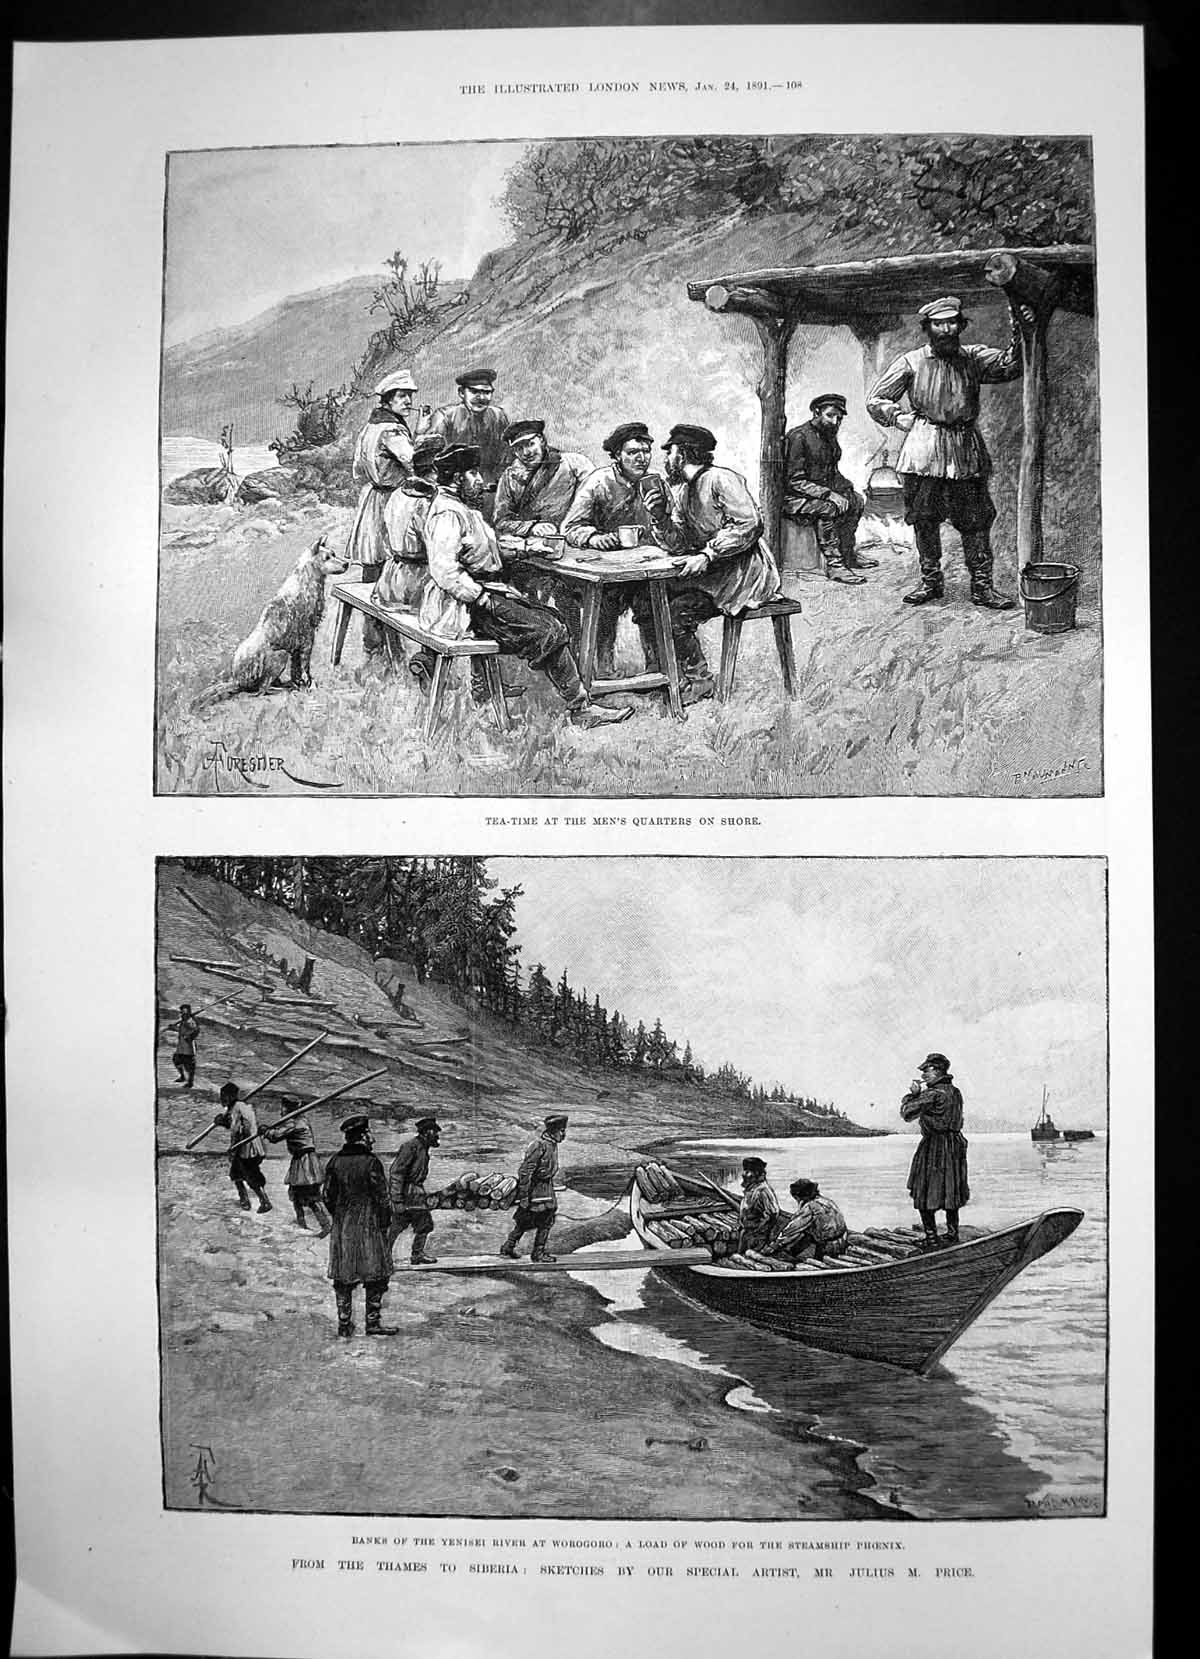 Antique-Old-Print-Siberia-Yenisei-River-Wood-Steamship-Phoenix-Samoyede-1891